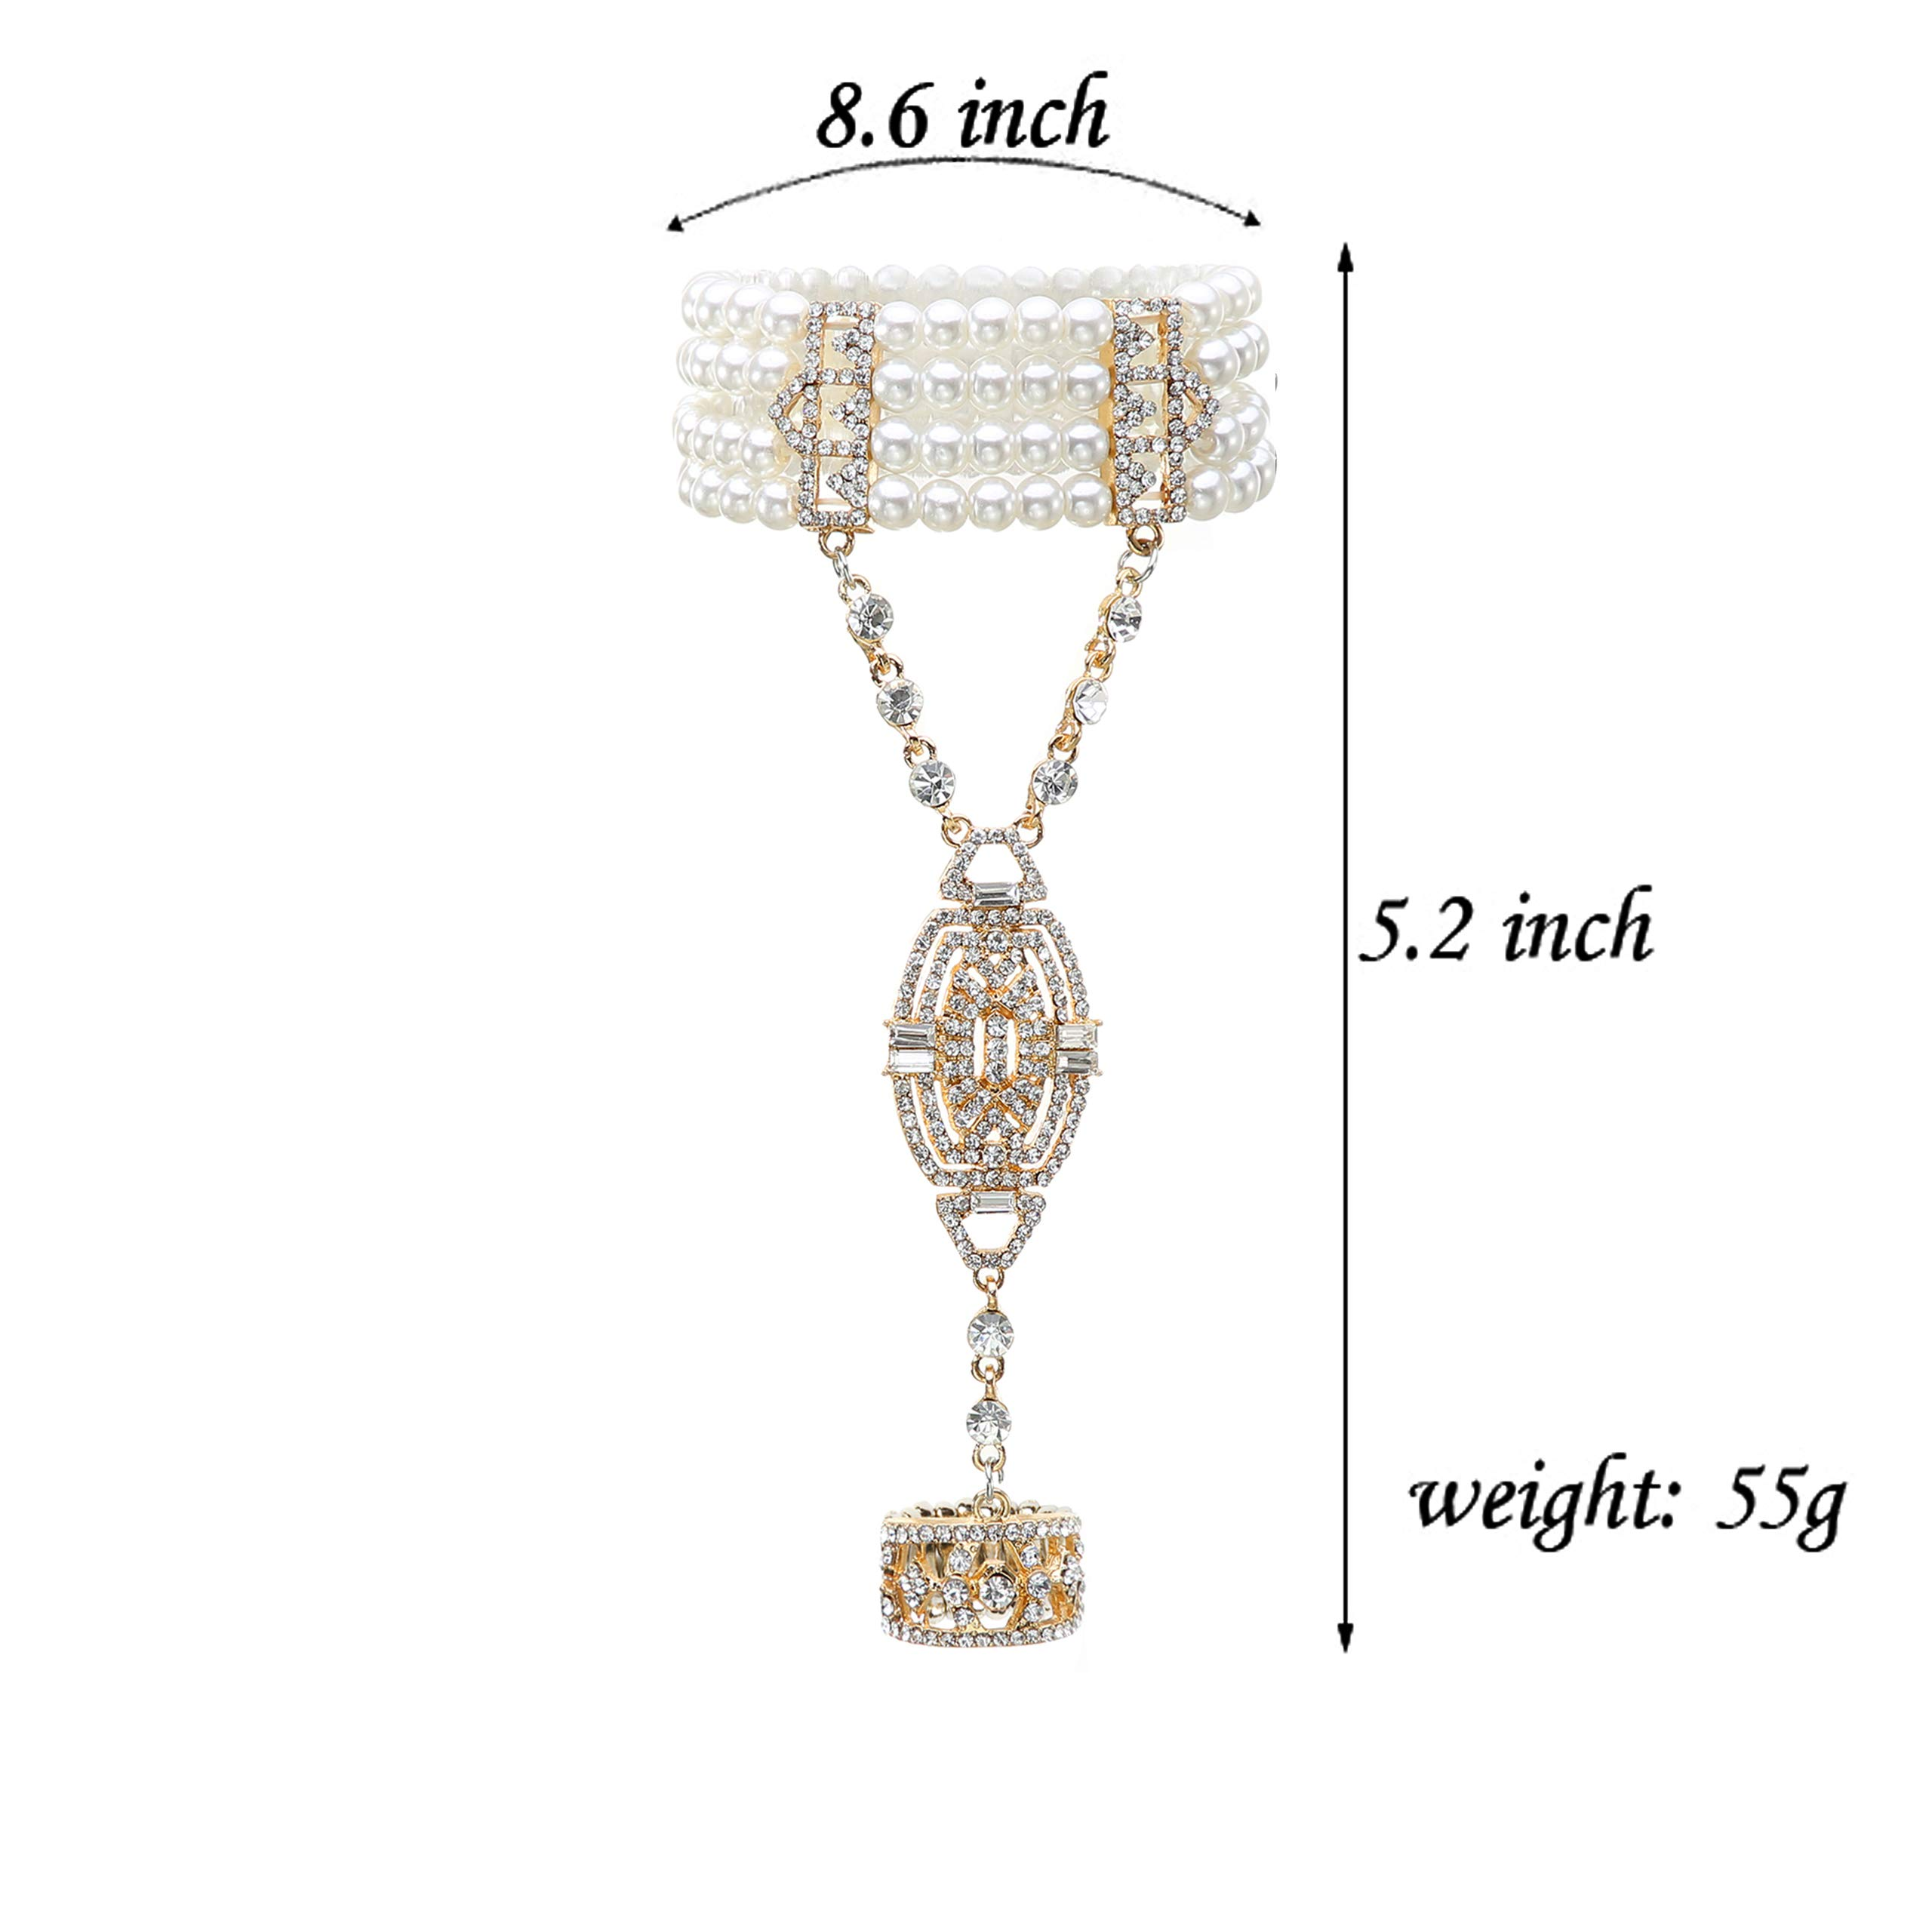 Metme 1920s Gatsby Imitation Pearl Necklace Earrings Jewelry Set Multilayer 20s Flapper Accessories for Bridal Wedding